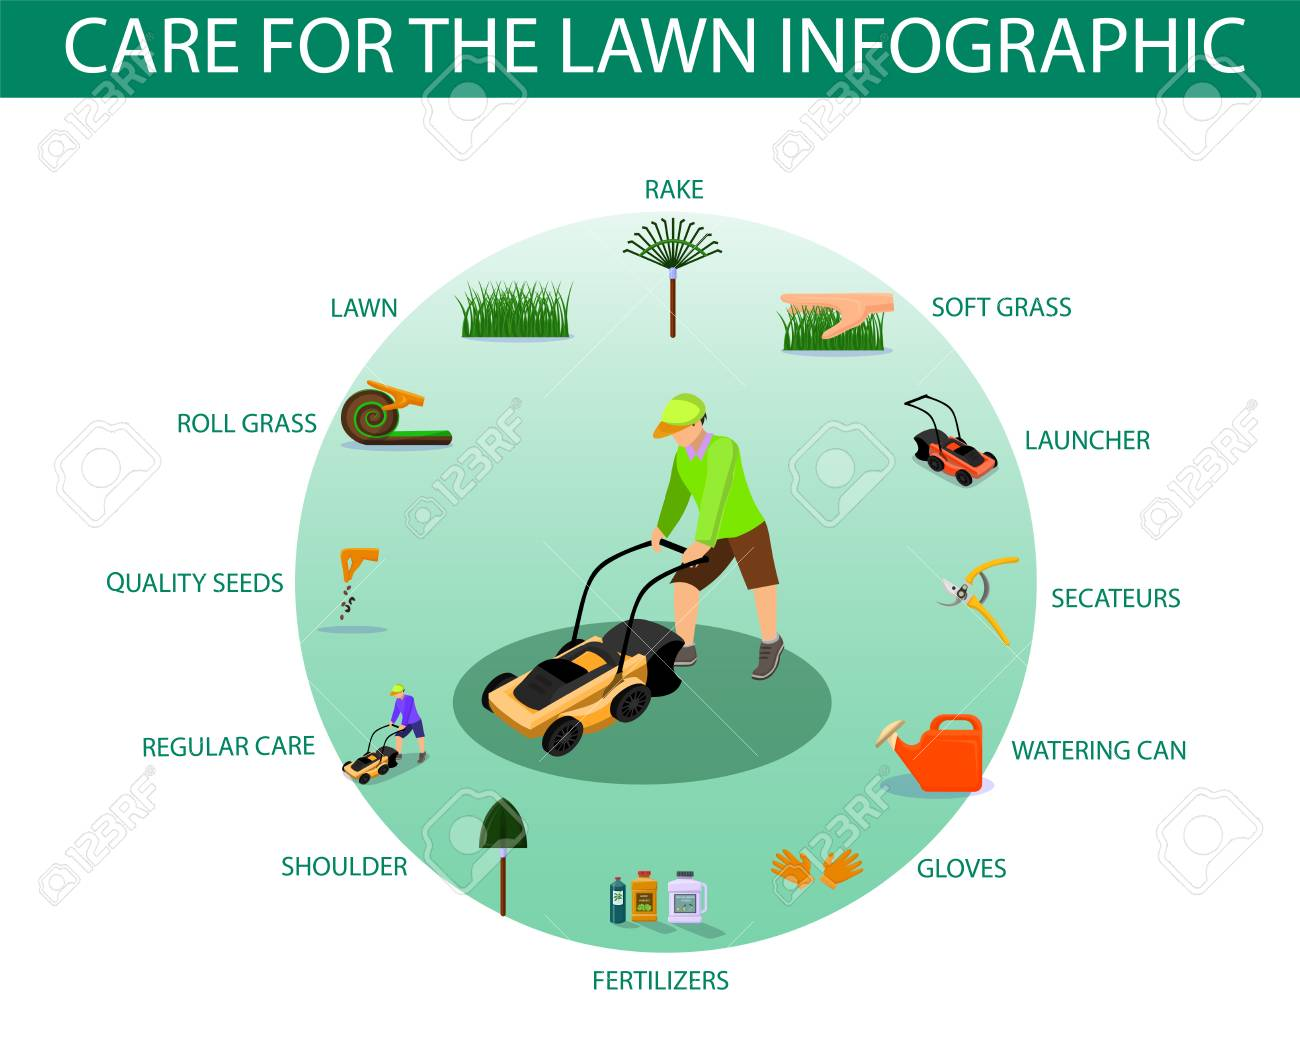 Poster Written Care for the Lawn Infographic. Haircut Equipment for Grass Care Home: Rake, Launcher, Secateurs, Watering Can, Cloves, Fertilizers, Shoulder, Regular Care, Quality Seeds, Roll Grass. - 123347721